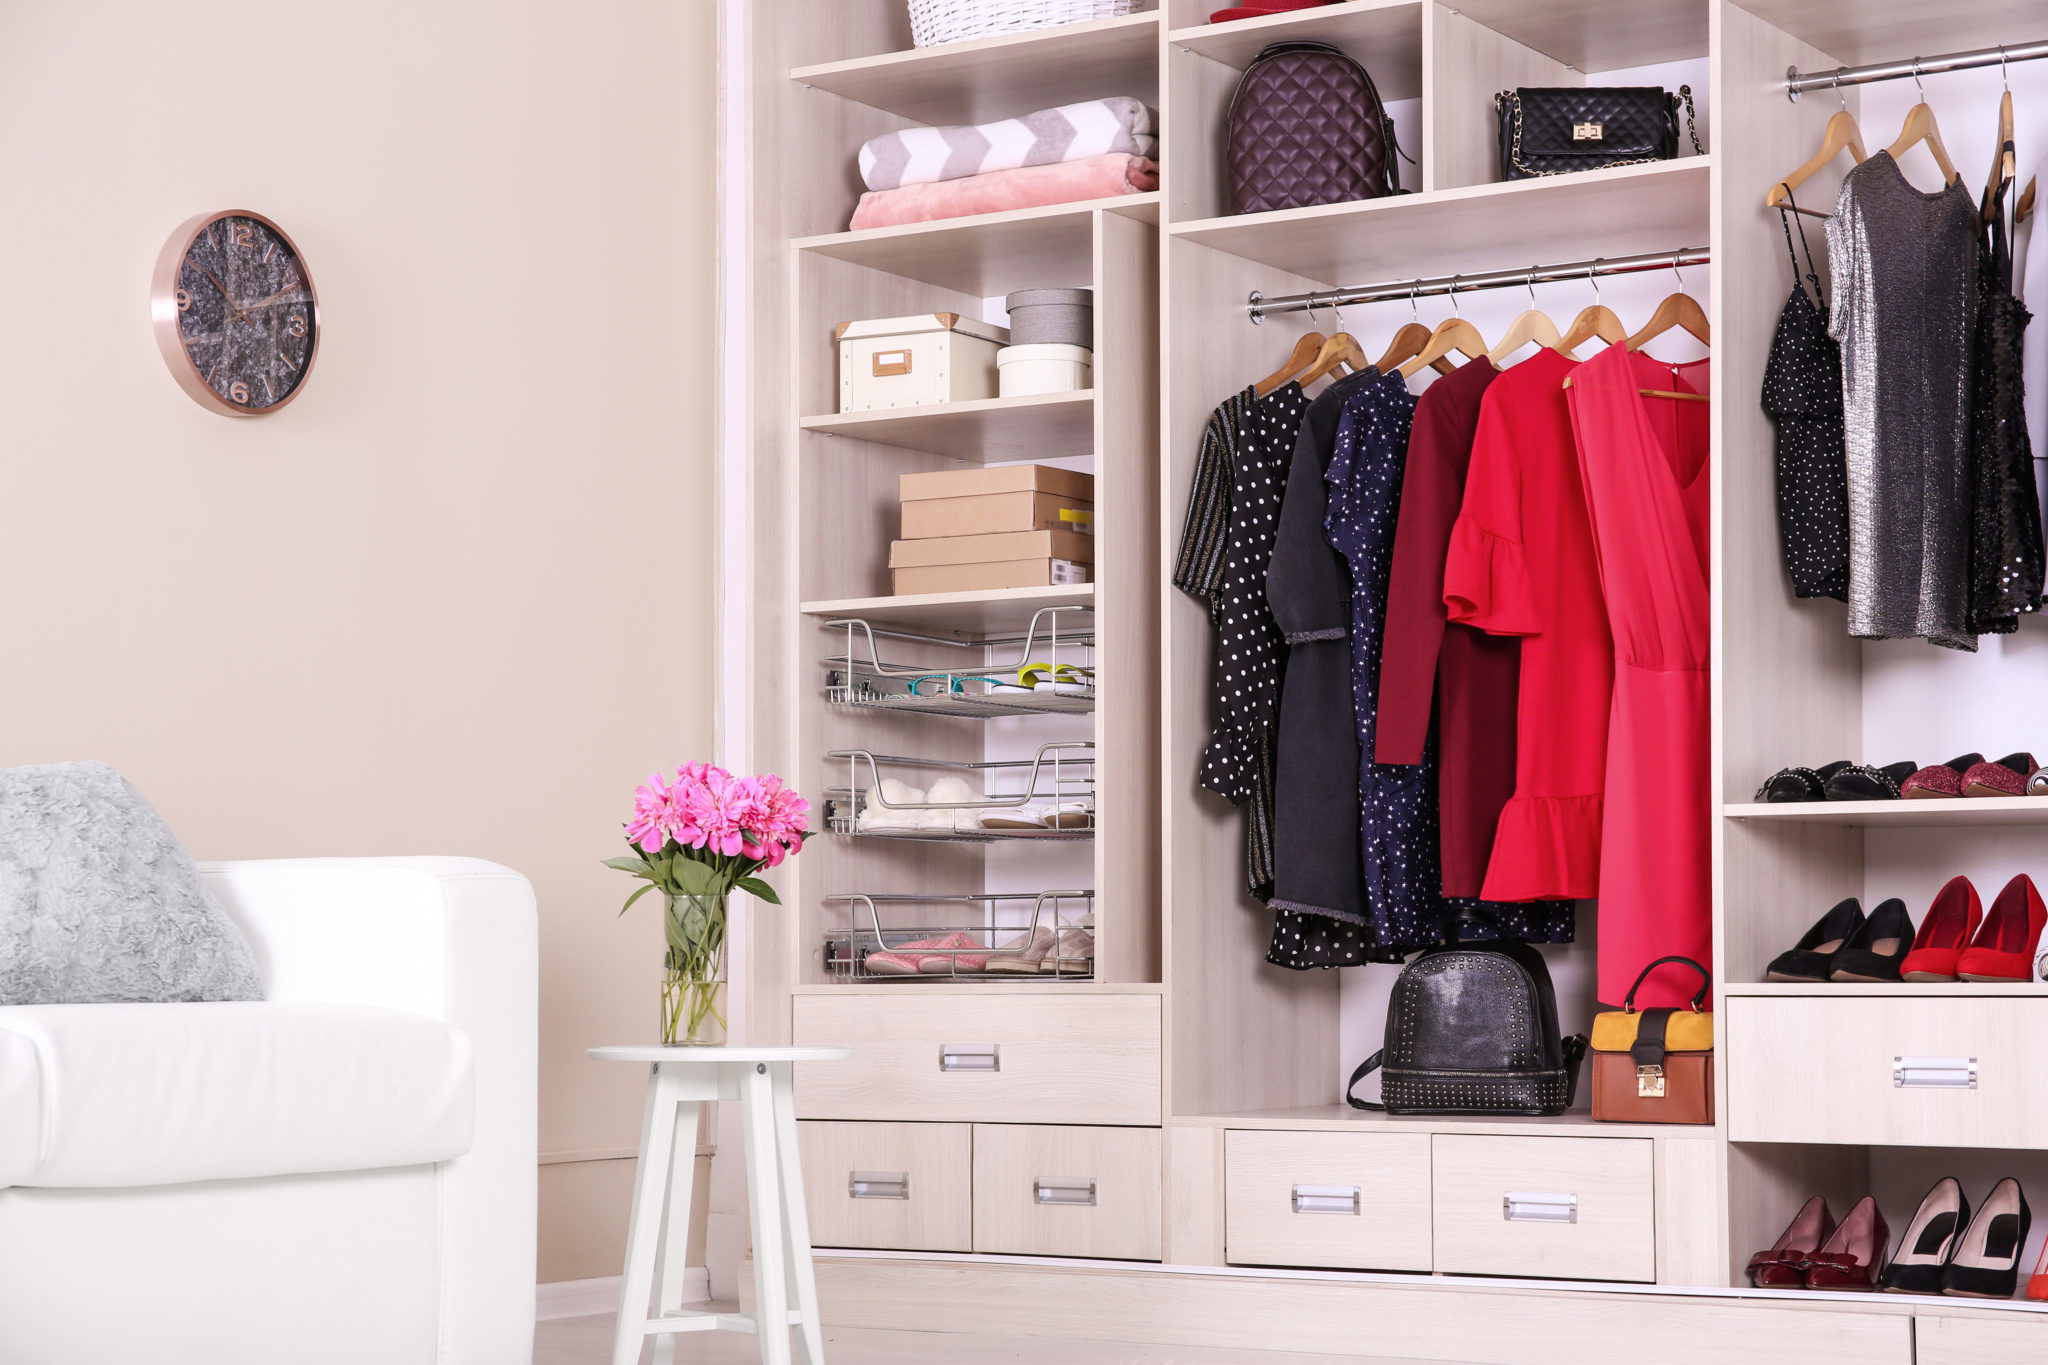 Modern wardrobe with stylish clothes in room interior